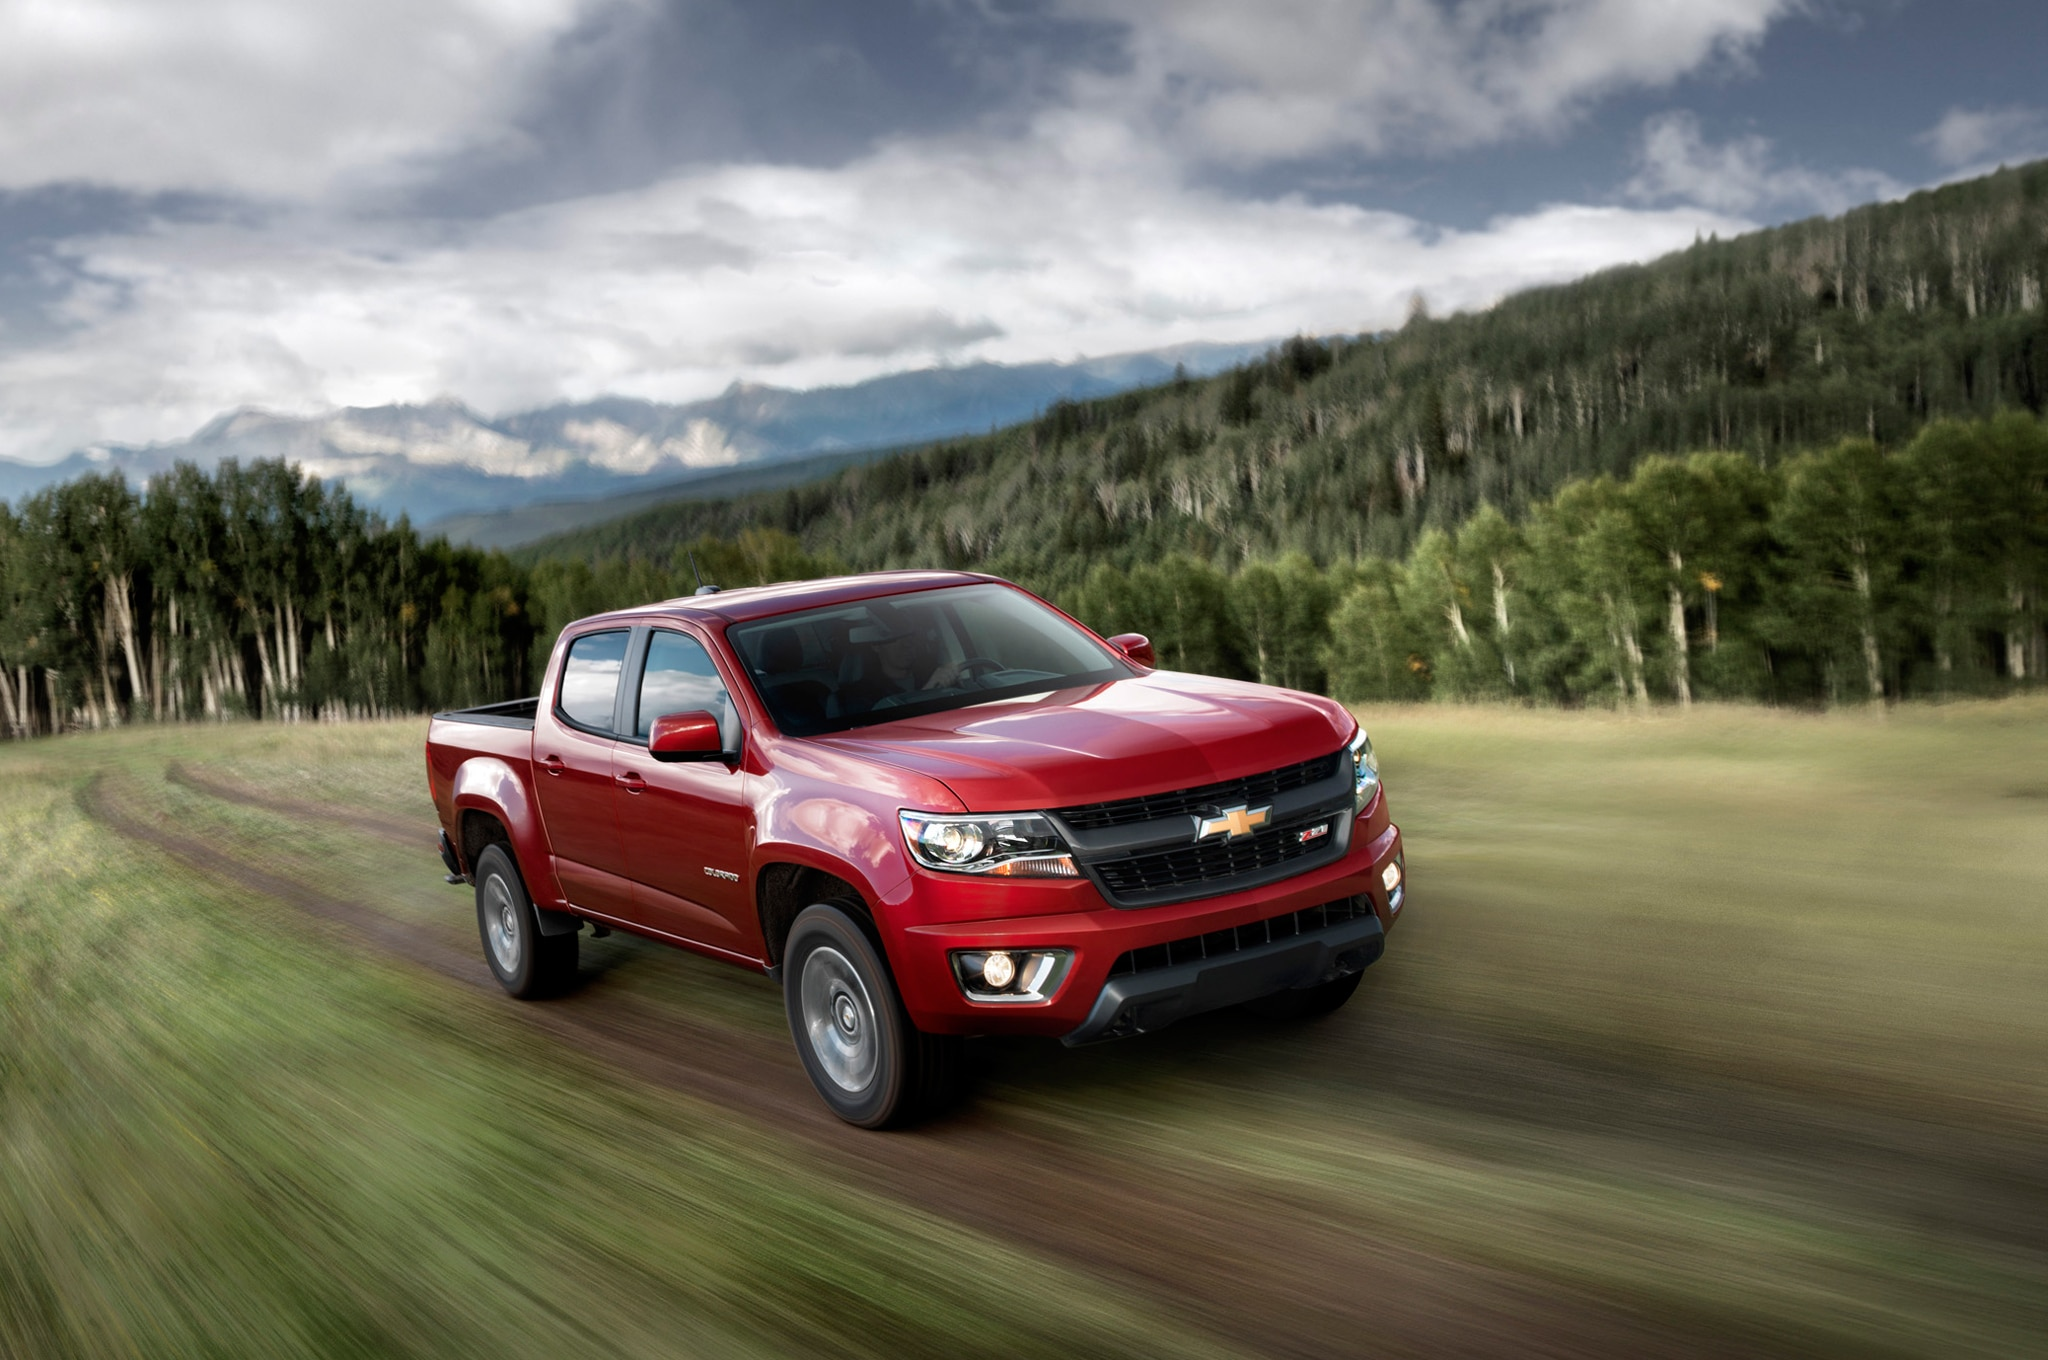 2015 Chevrolet Colorado Front End In Motion